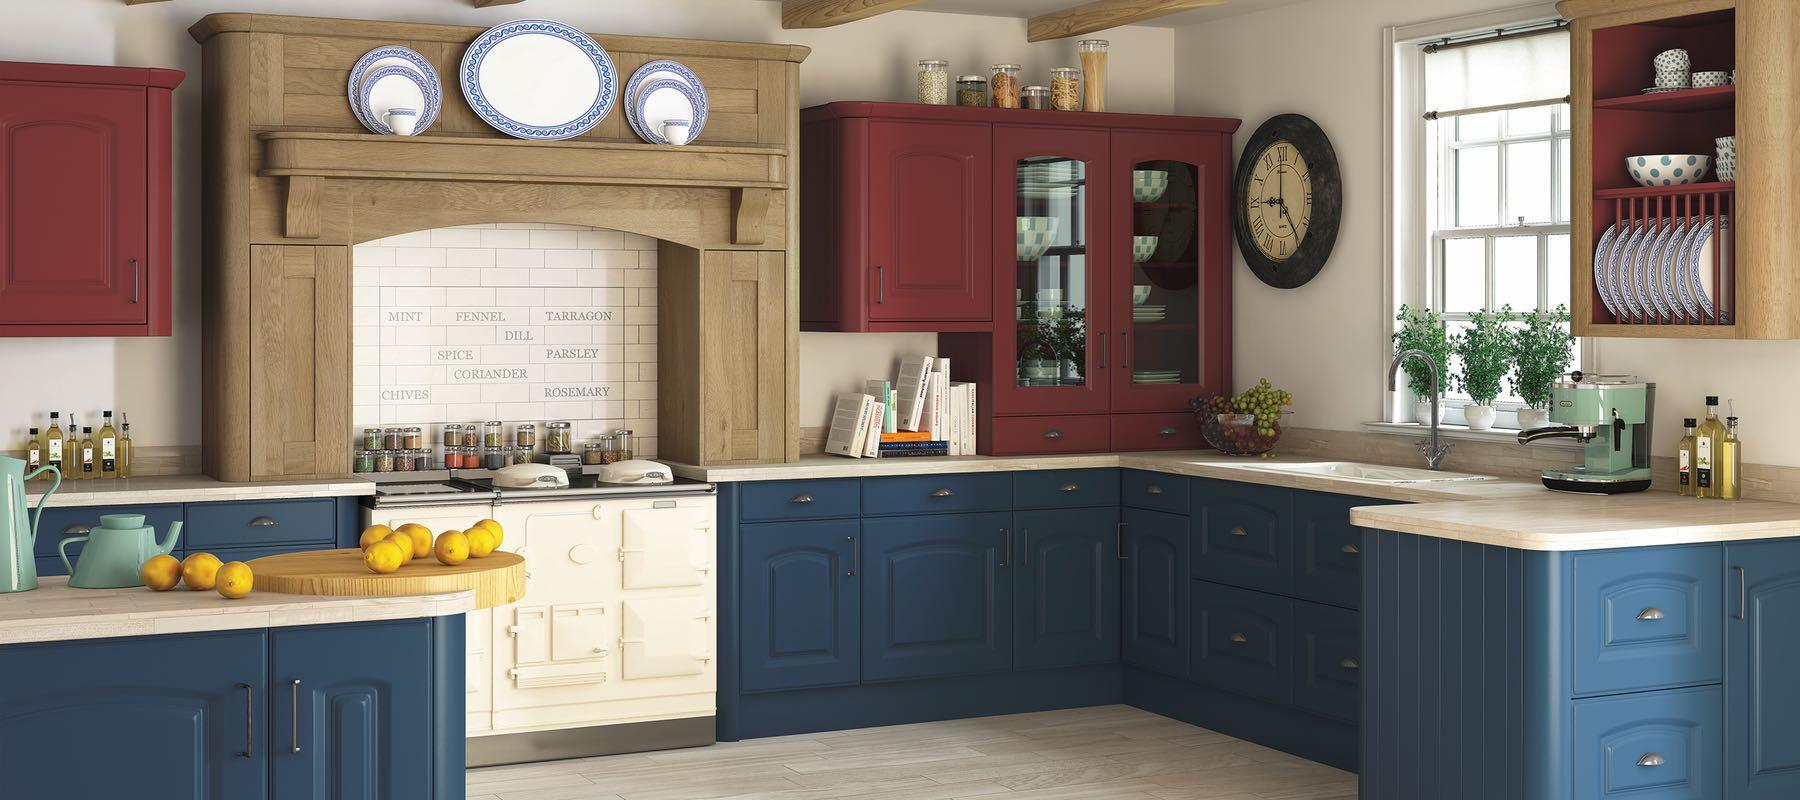 Dream Door Kitchens Verona Traditional Replacement Kitchen Doors Dream Doors